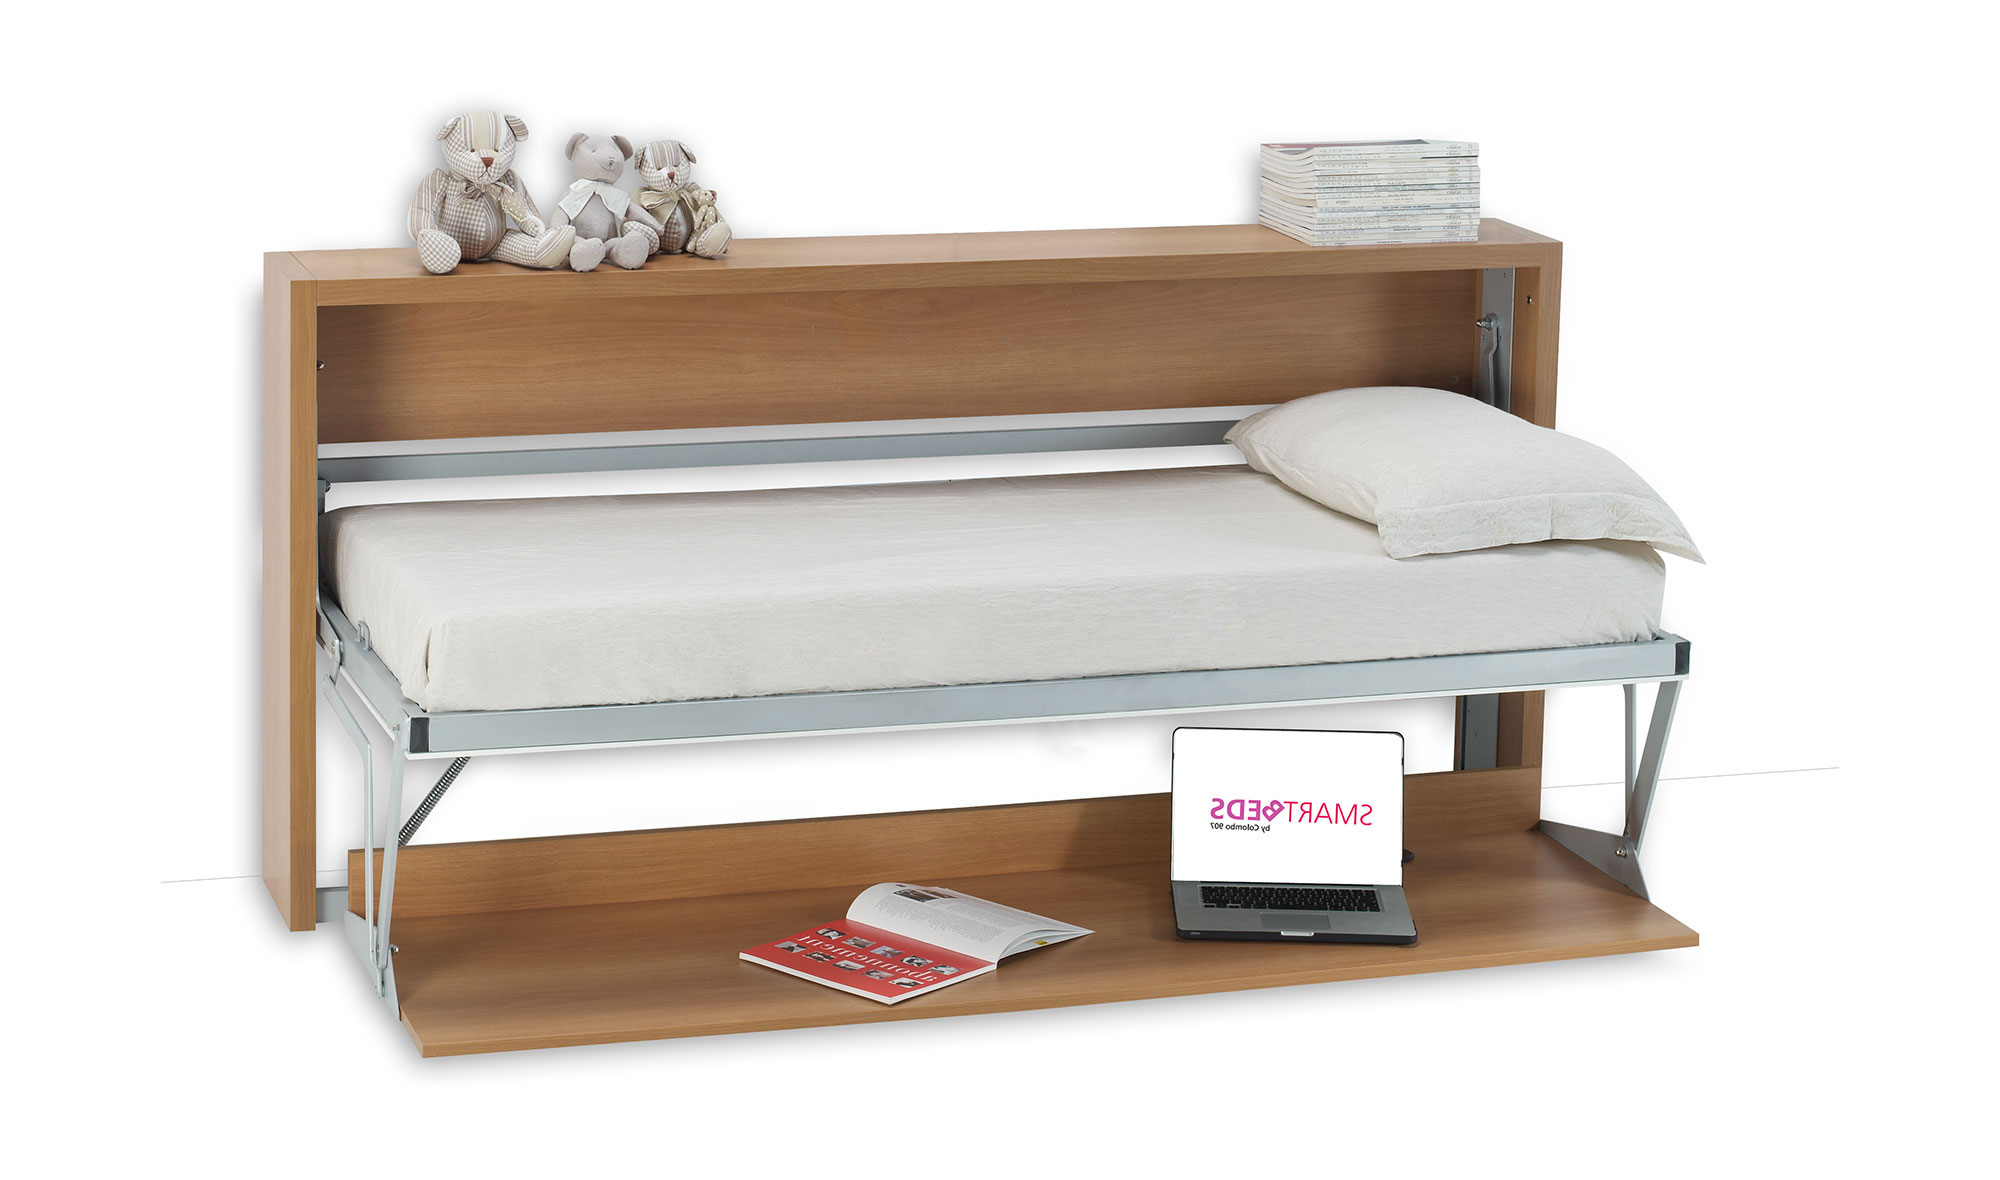 Cama abatible convertible en escritorio joker no disponible en - Cama abatible escritorio ...